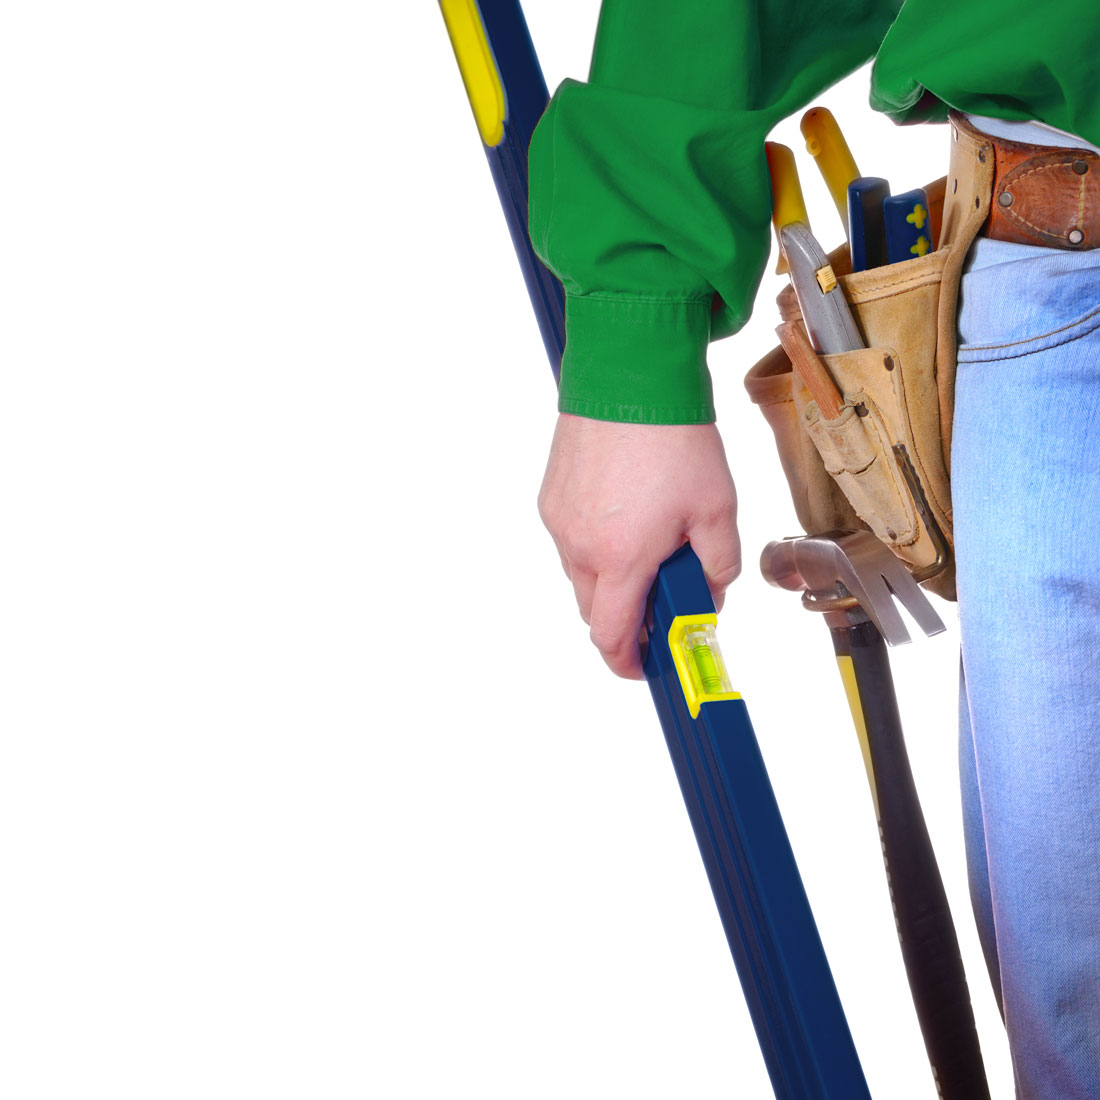 swenson-construction-company-tampa-carpenter-with-tool-belt-02F47056-002